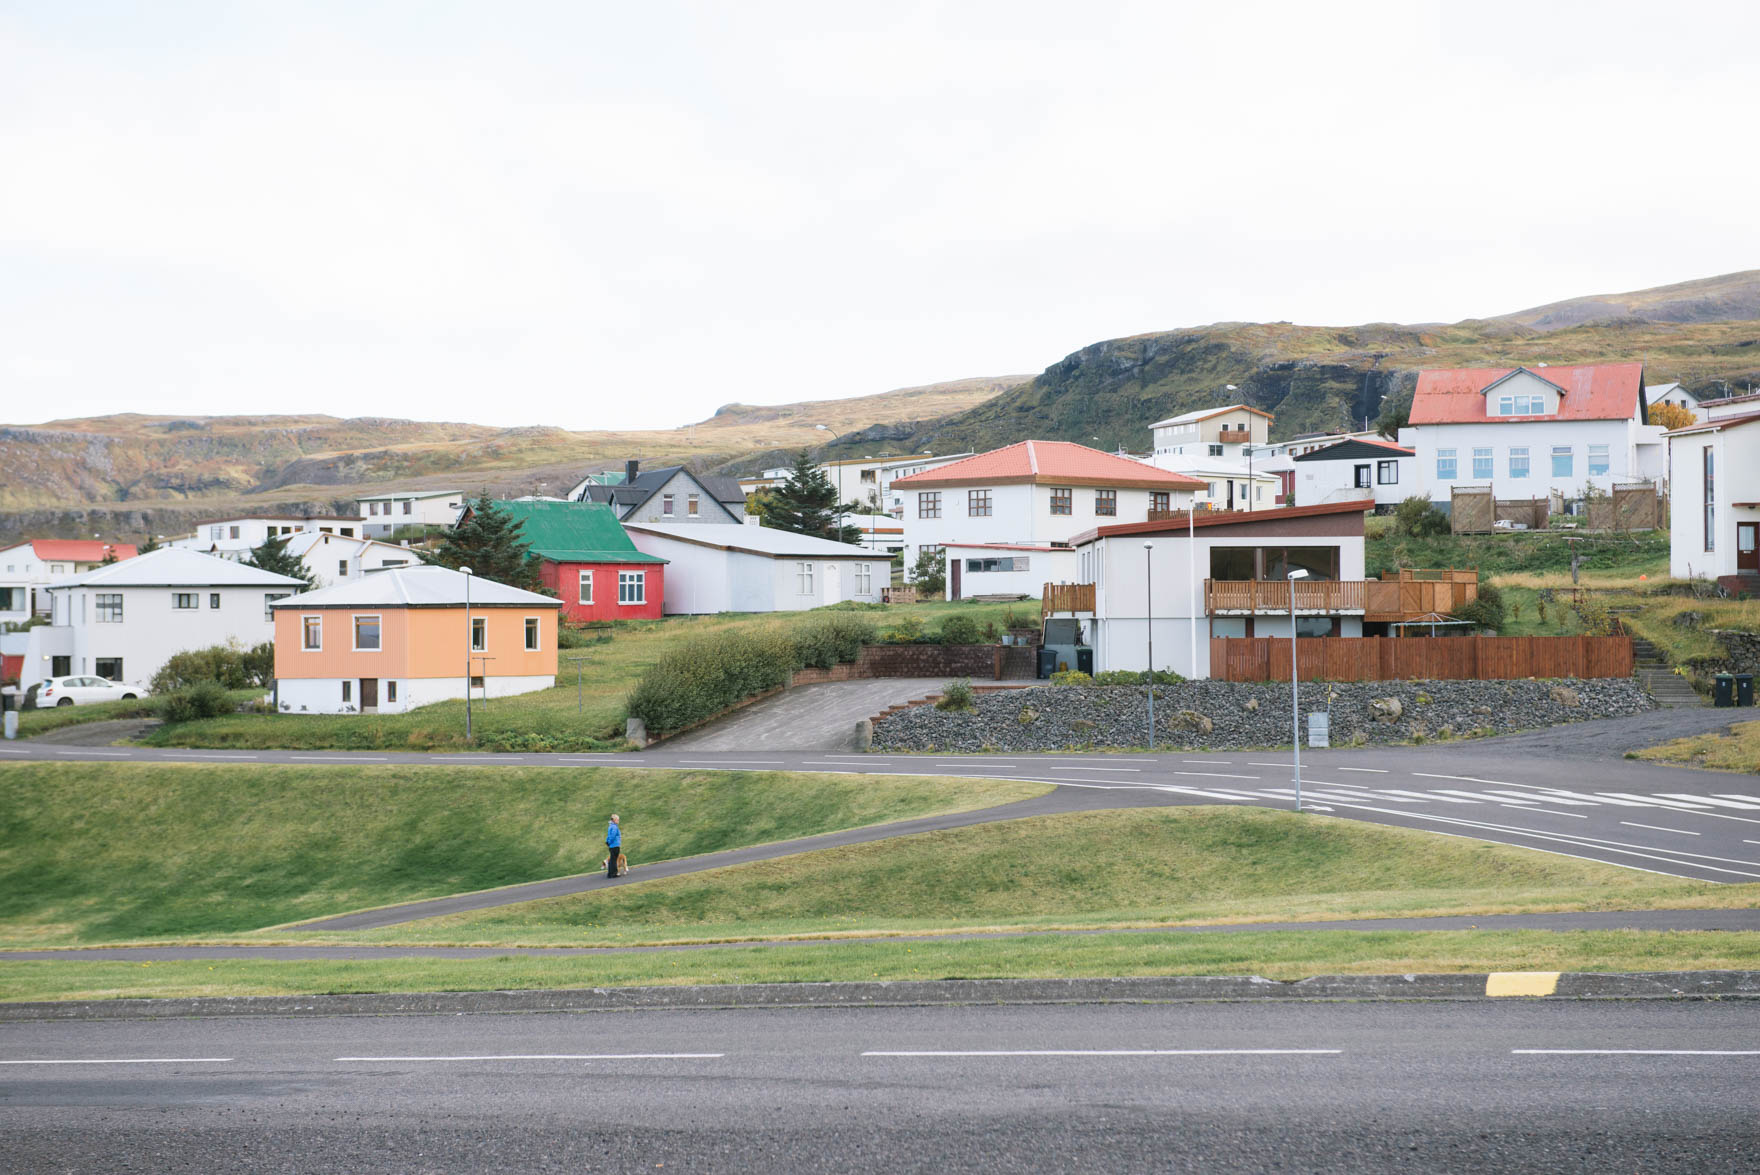 A solidary woman and her dog pause in the middle of an empty road in the foreground of a cluster of pastel colored houses